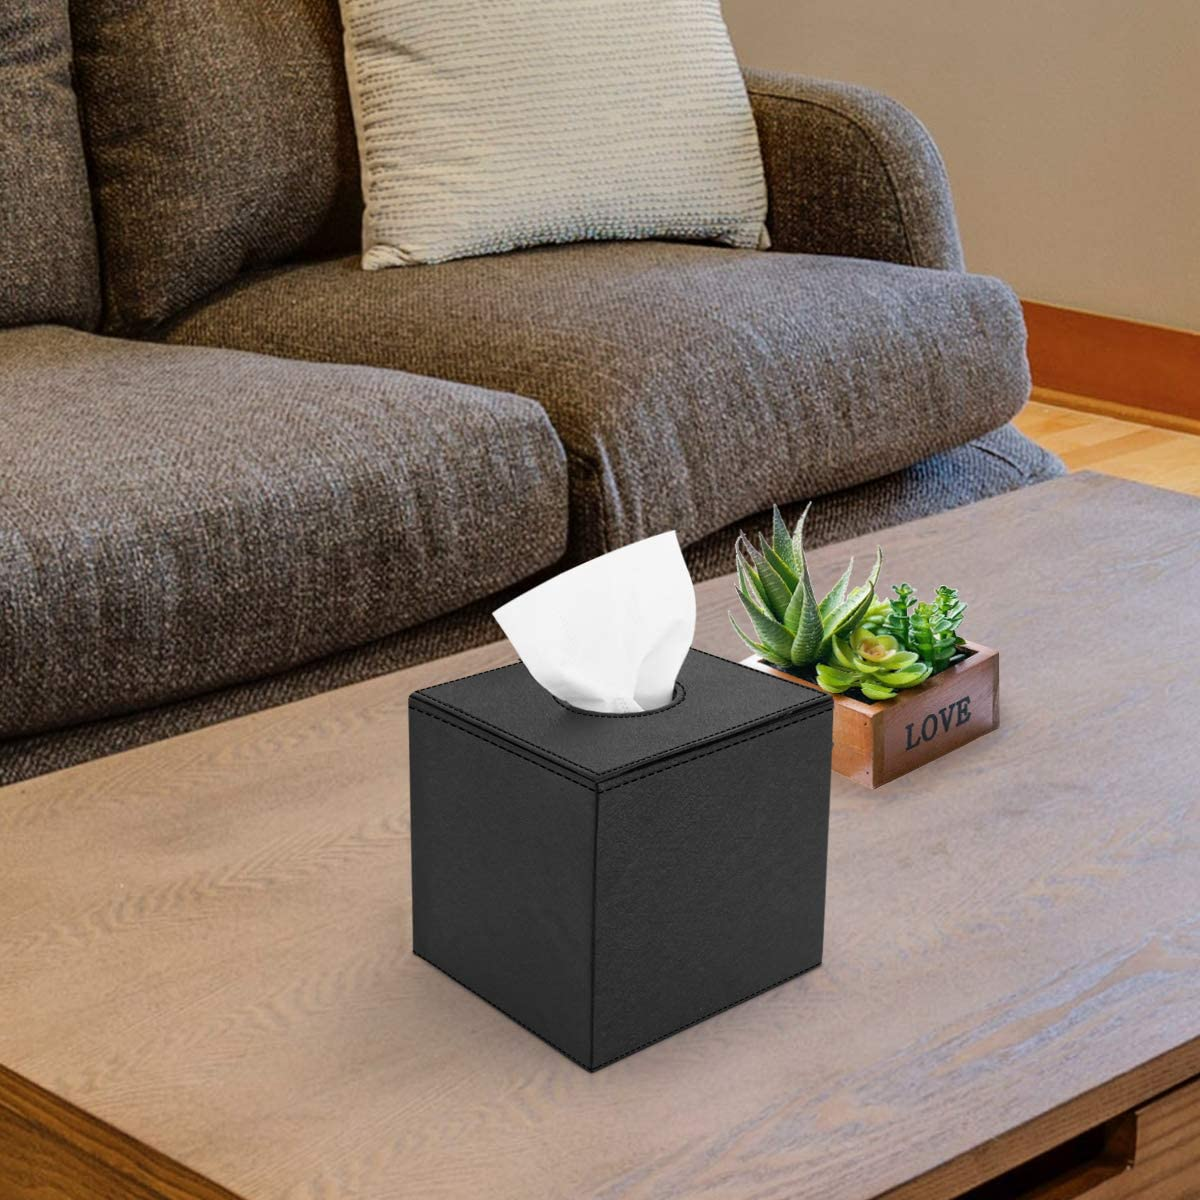 Black Luxspire PU Leather Roll Tissue Holder Home Office Decoration Modern Square Paper Facial Tissue Box Cover Case Dispenser for Bathroom Vanity Counter Tops//Bedroom//Car